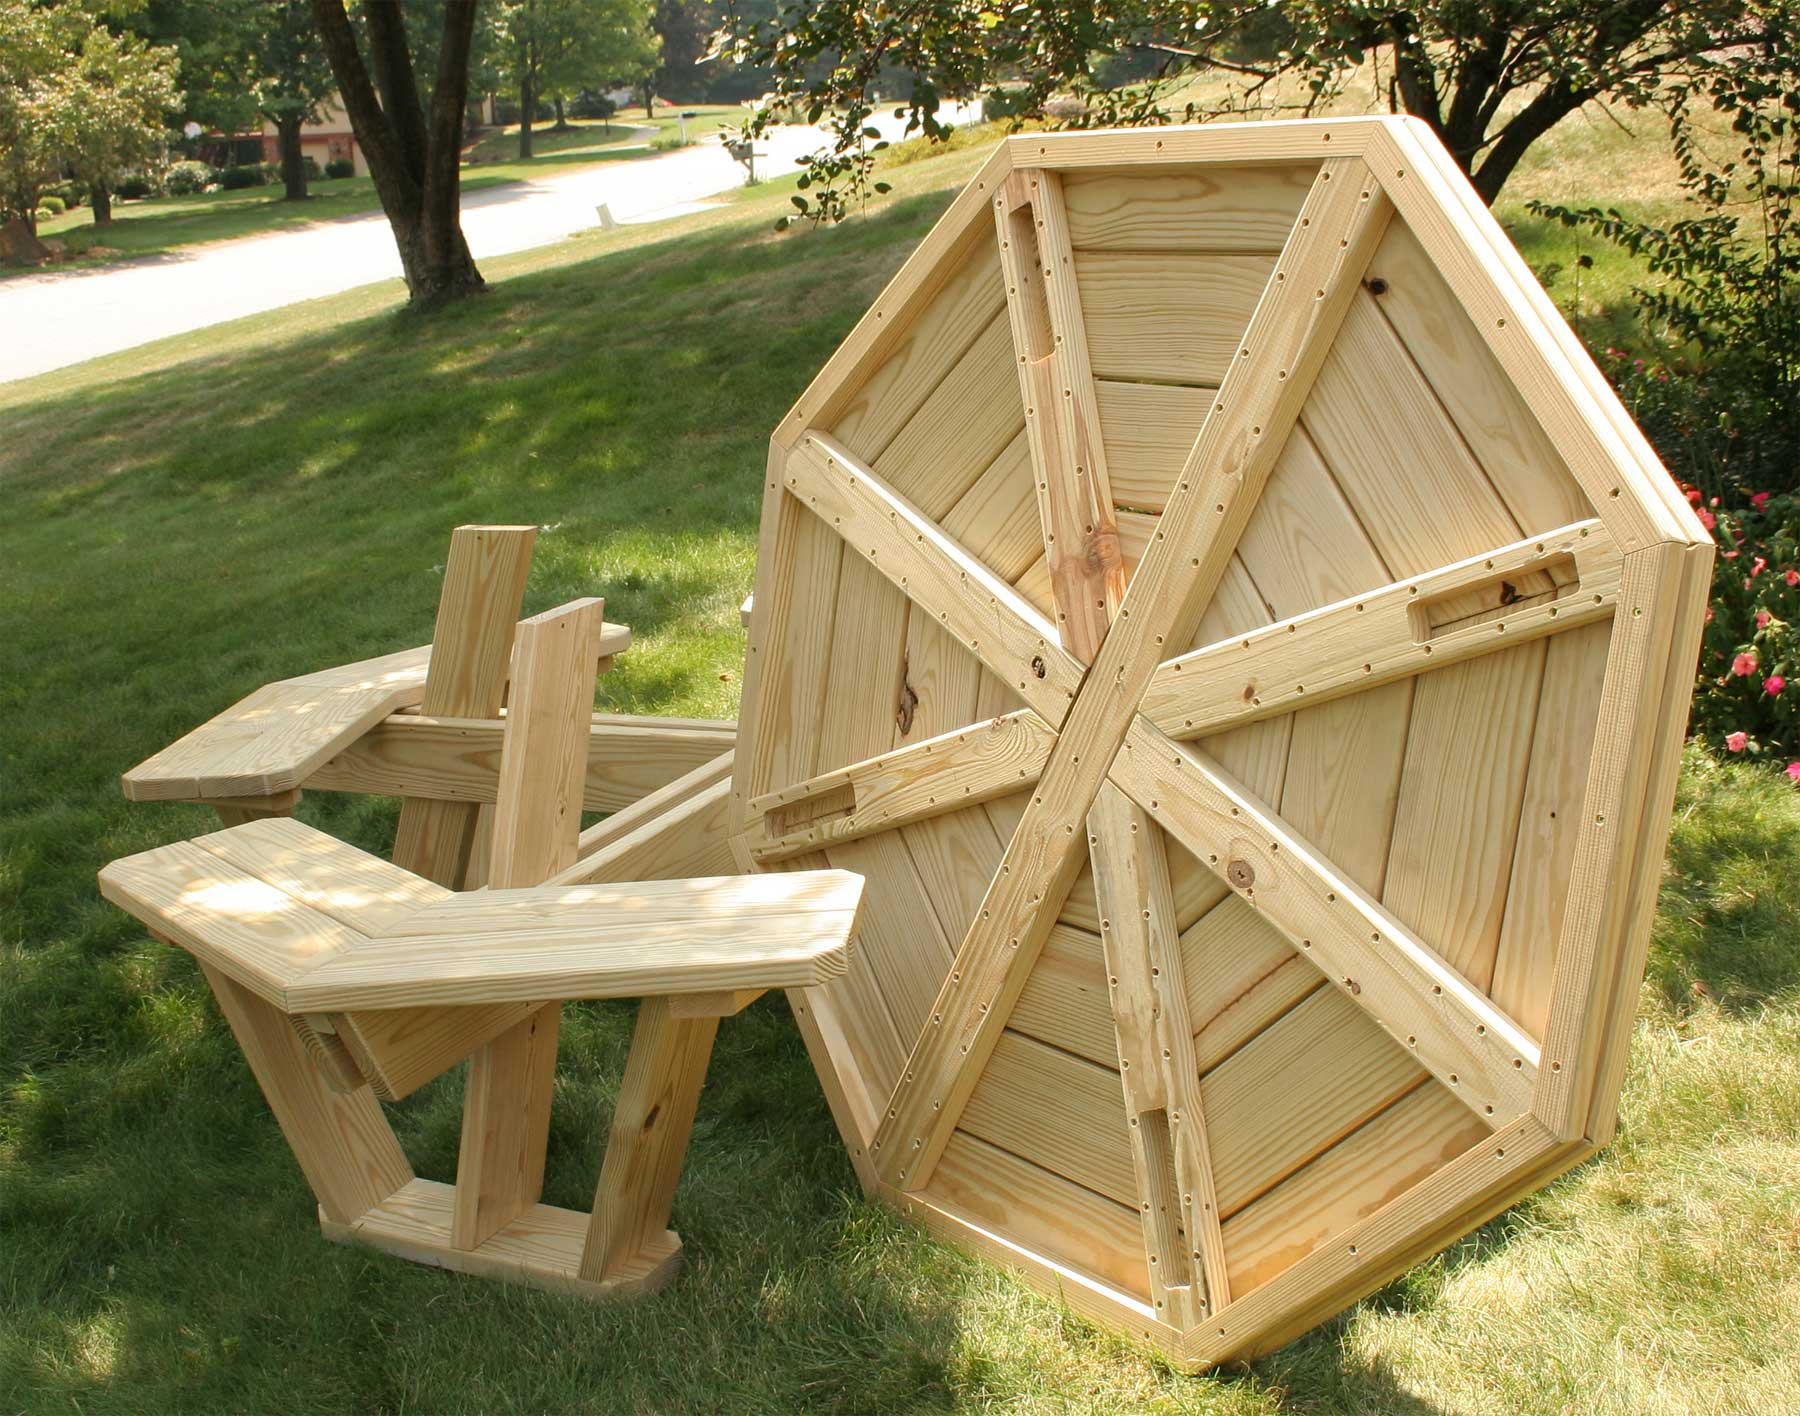 … So here ya go, a complete resource for building a picnic table ...